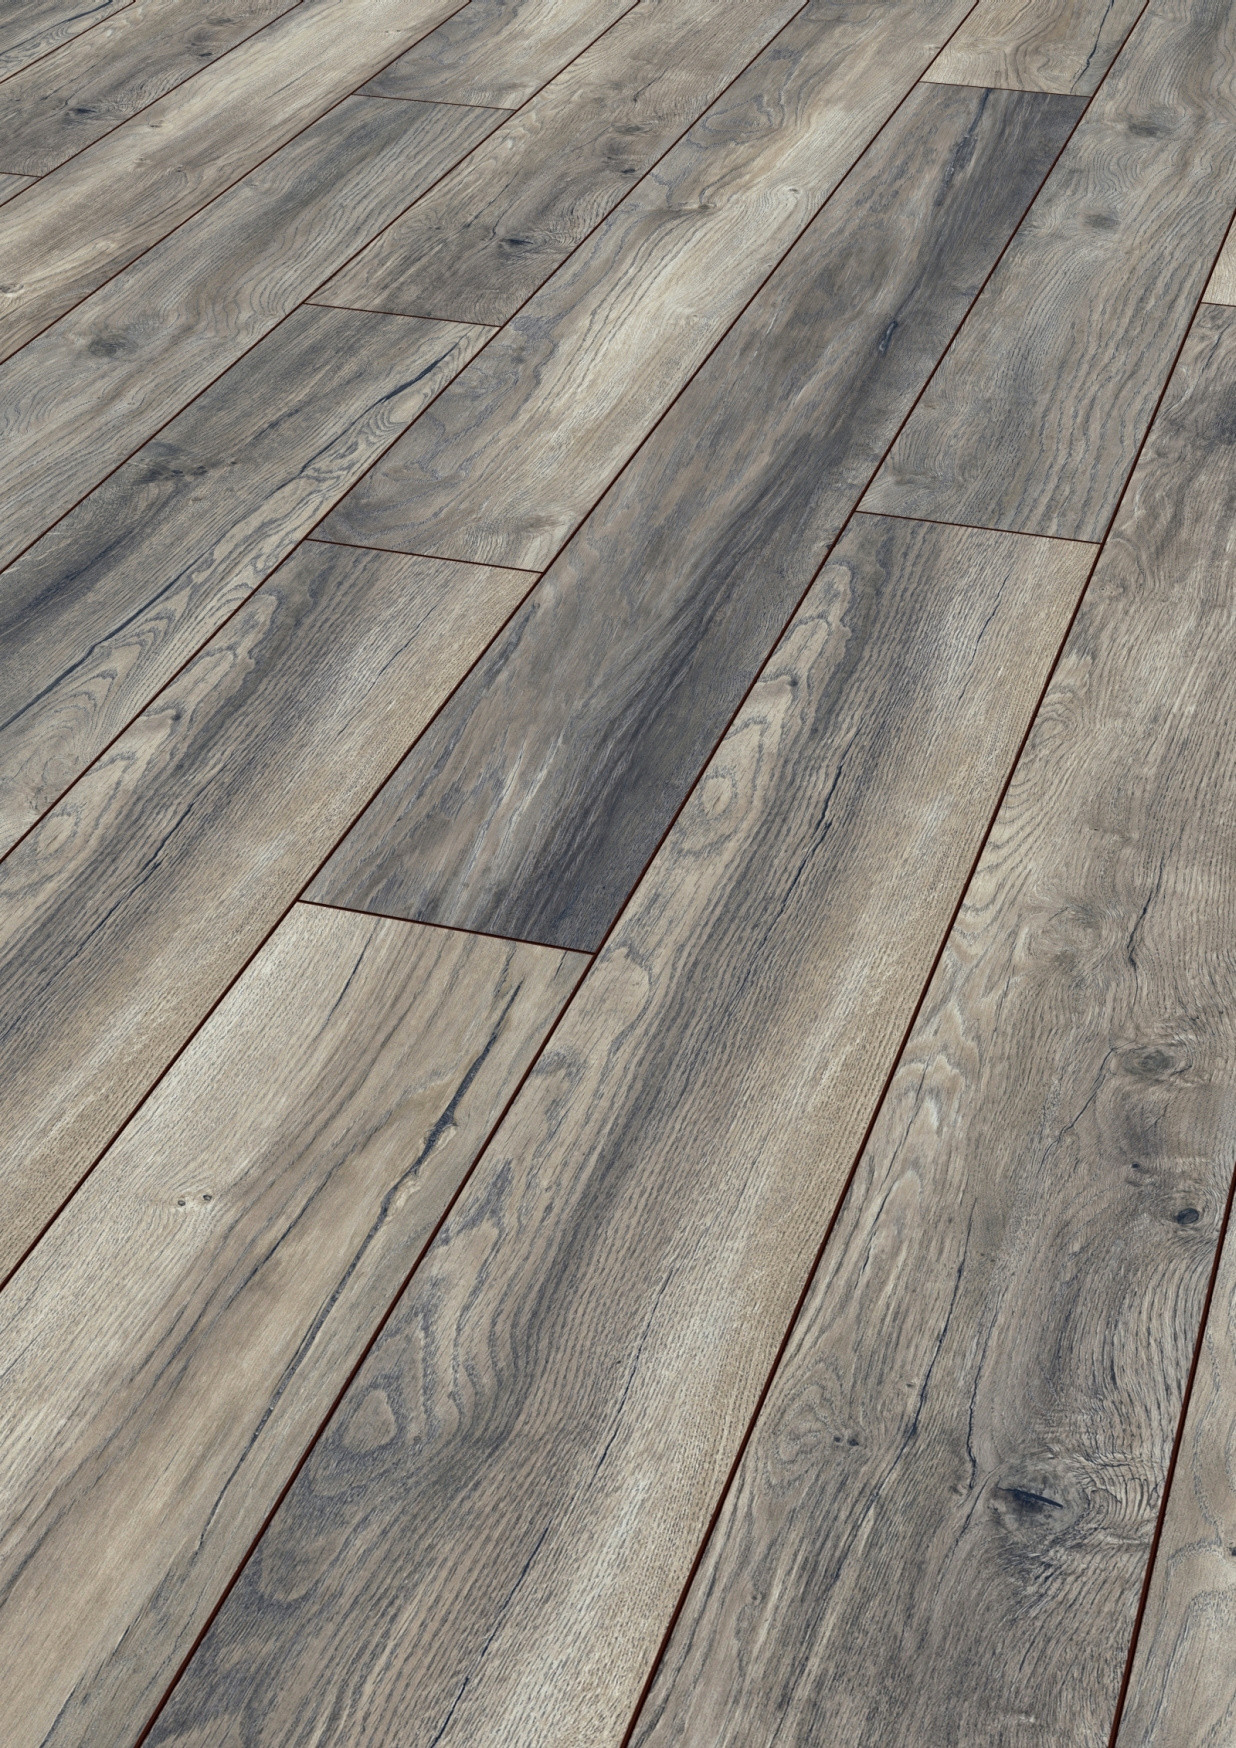 inexpensive hardwood flooring of 26 beautiful solid wood flooring wlcu intended for related posts